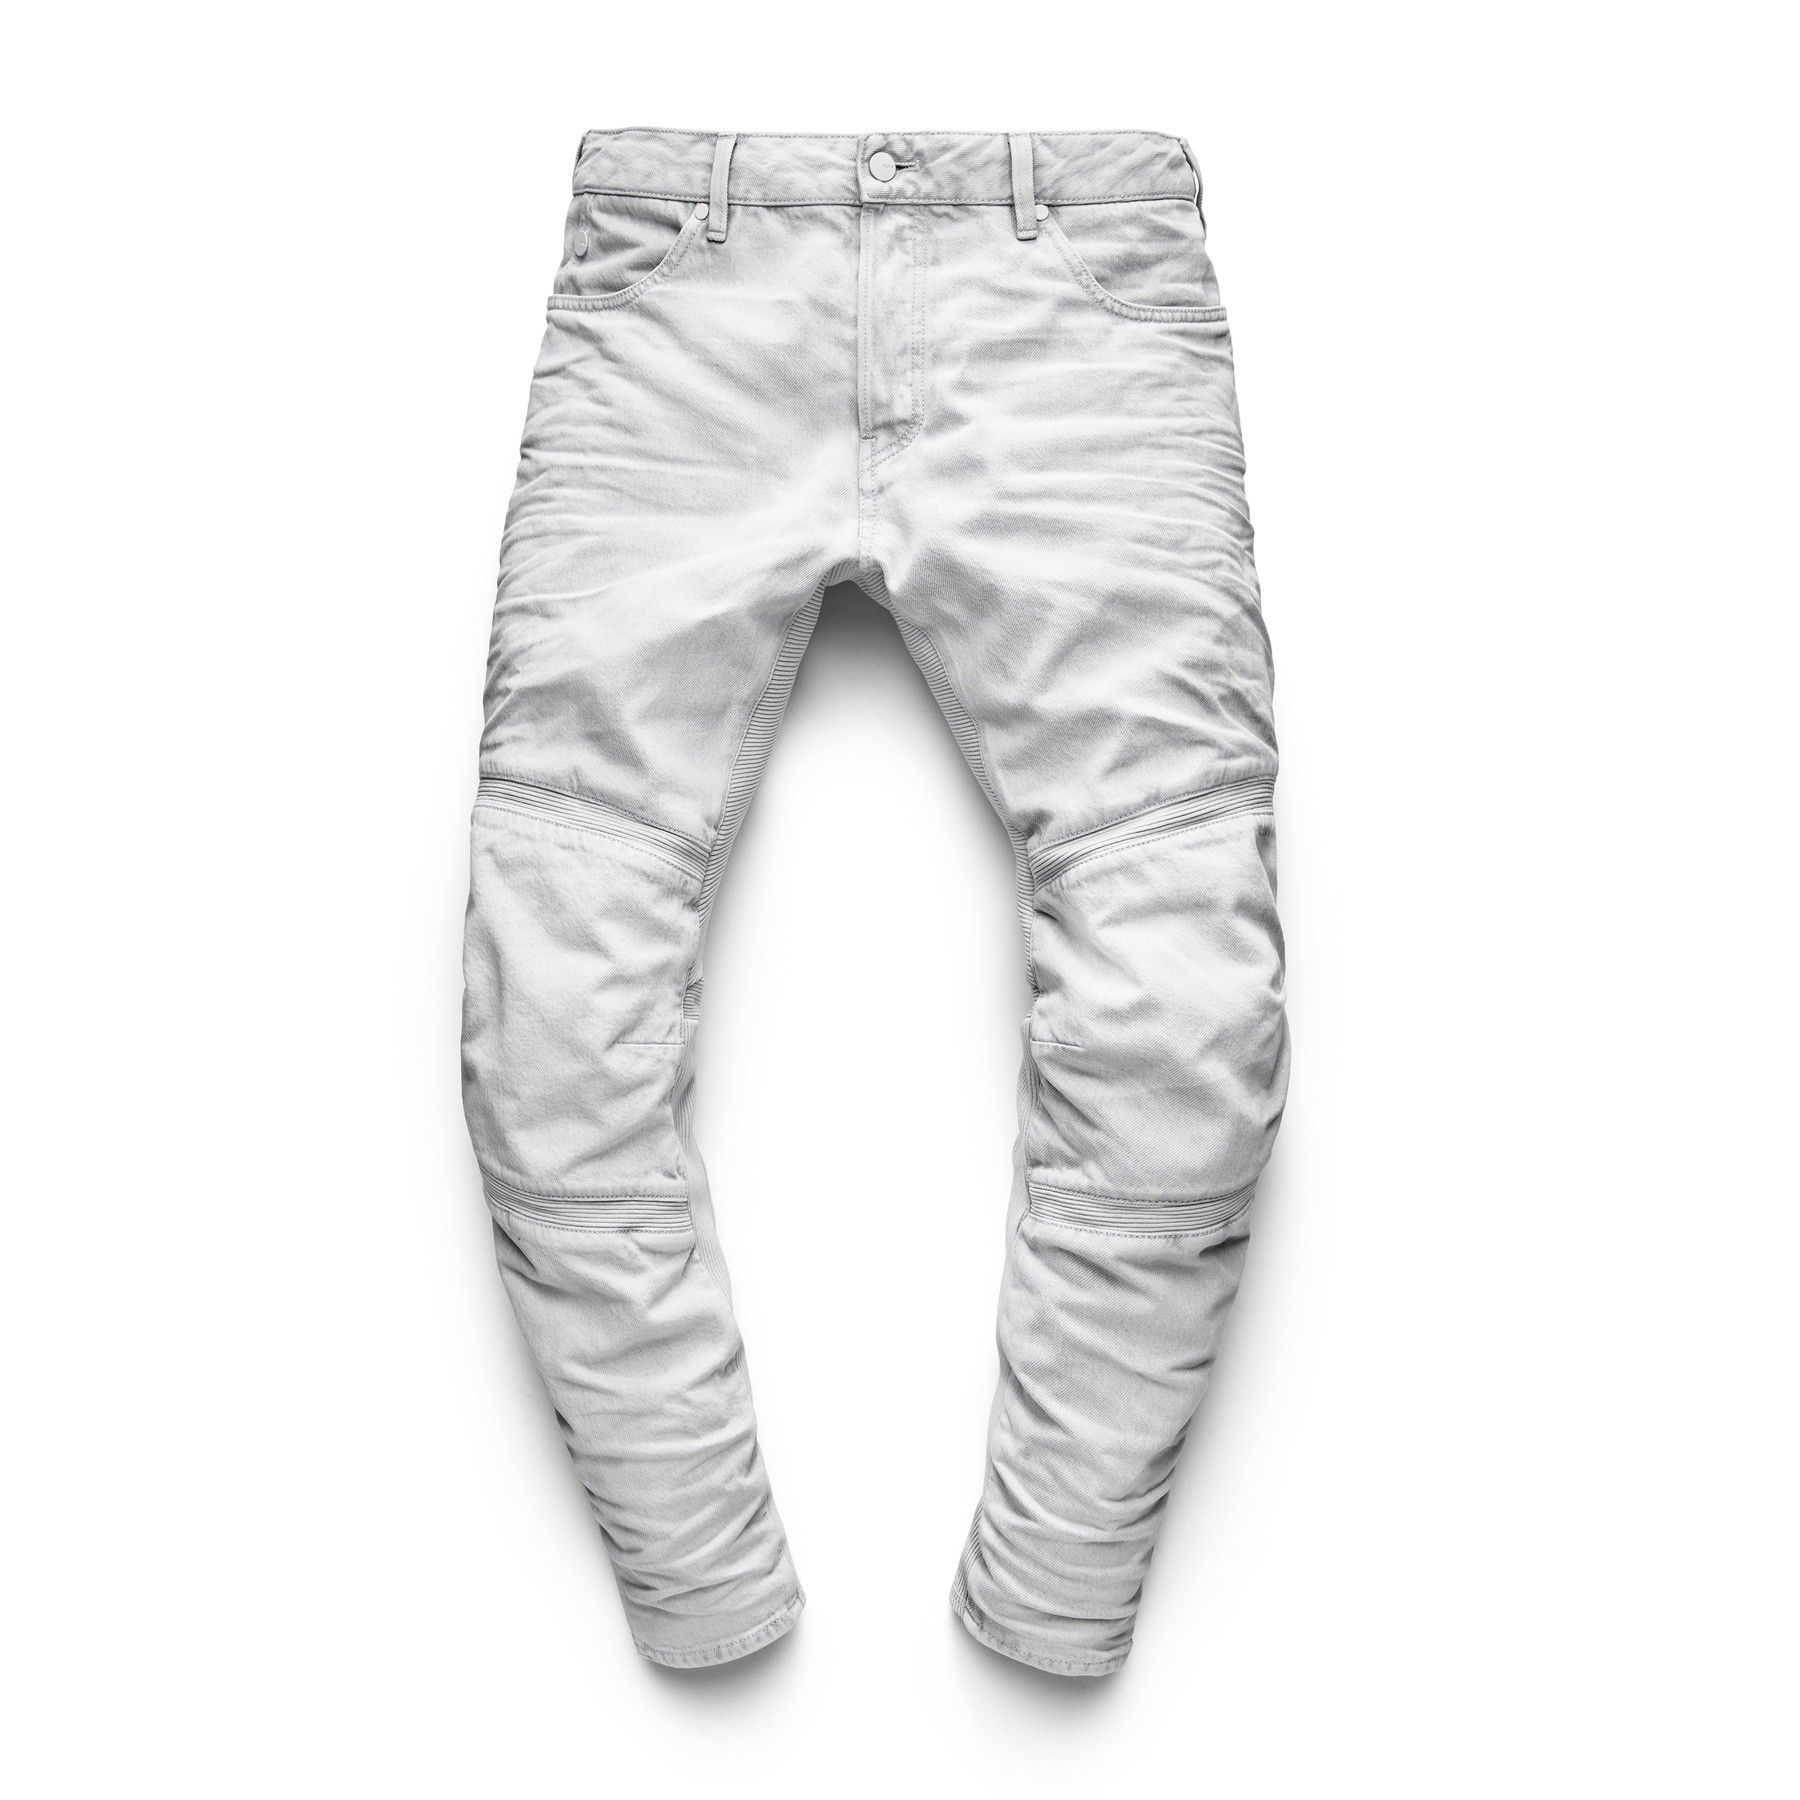 G-Star Raw Research II: Aitor Throup Project GSRR Motac 3D Slim RL (